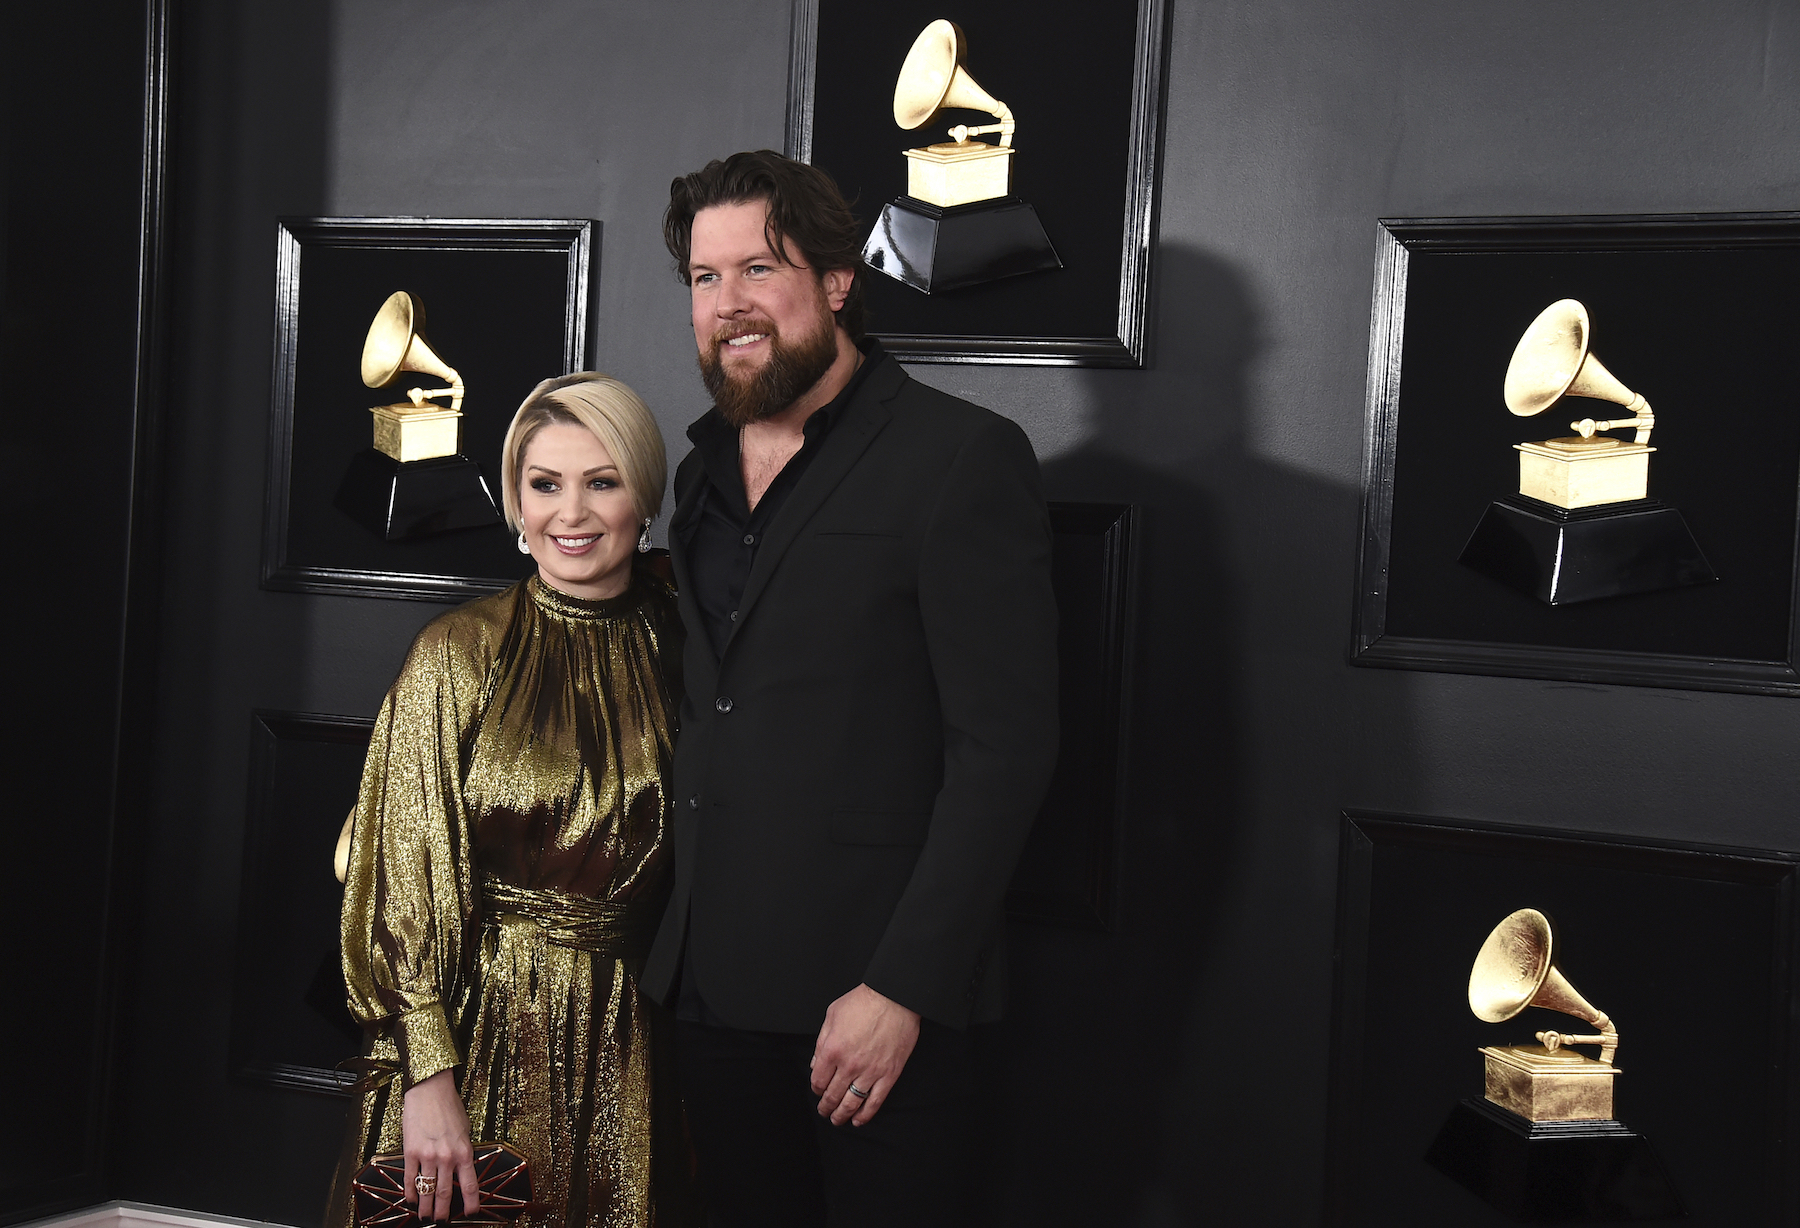 "<div class=""meta image-caption""><div class=""origin-logo origin-image ap""><span>AP</span></div><span class=""caption-text"">Zach Williams, right, and Crystal Williams arrive at the 61st annual Grammy Awards at the Staples Center on Sunday, Feb. 10, 2019, in Los Angeles. (Jordan Strauss/Invision/AP)</span></div>"